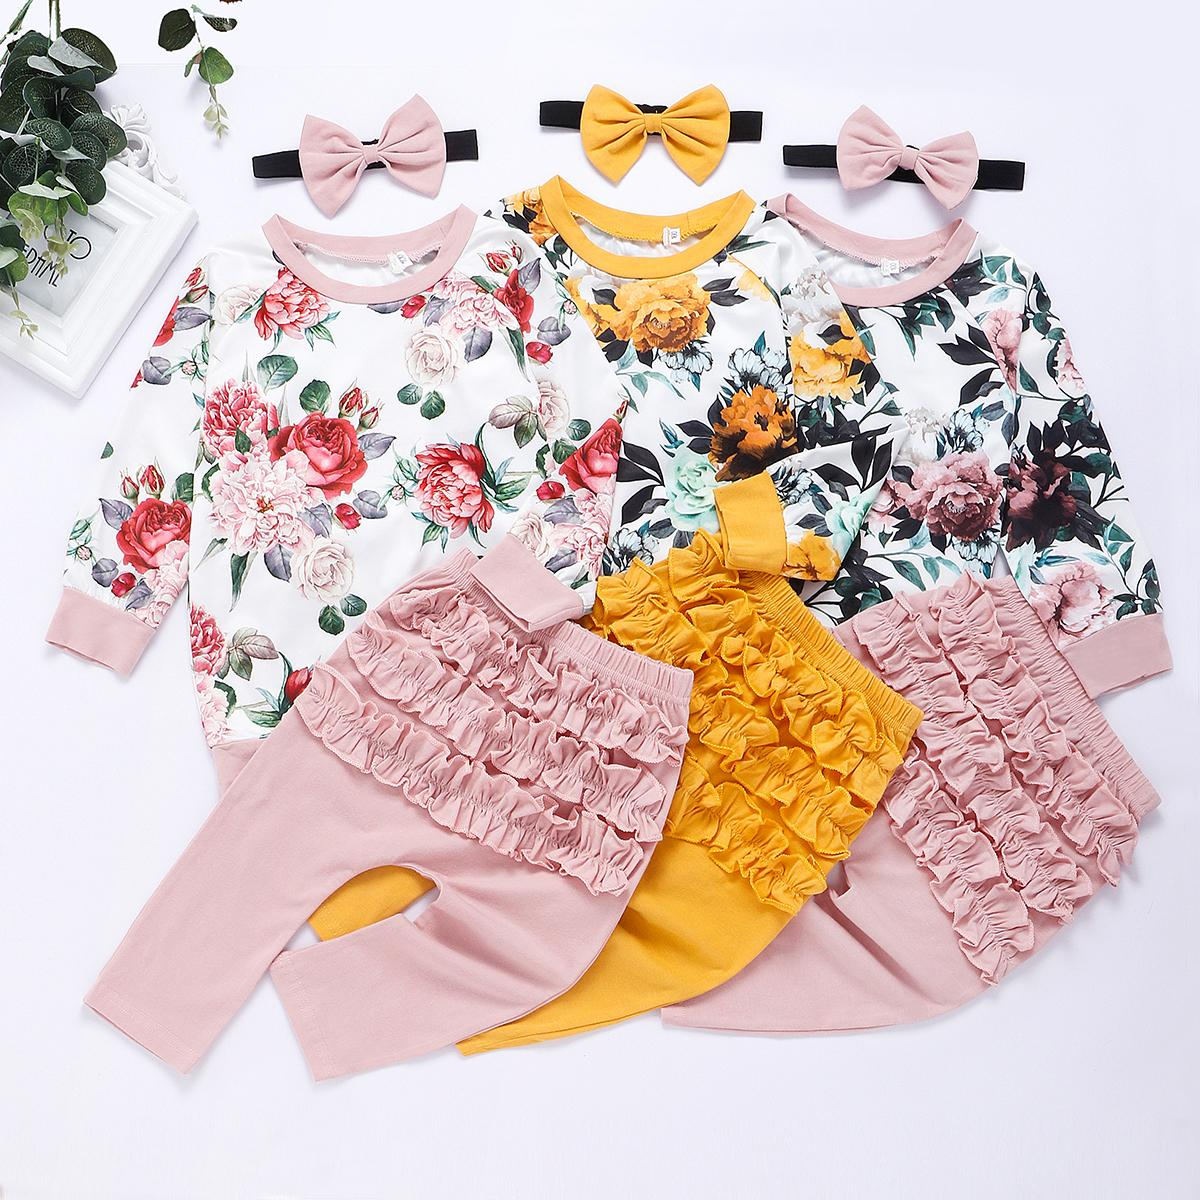 Cotton Newborn Baby Girl Clothes Infant Baby Girls Winter Clothe Outfits Flower Tops+Ruffle Pants Headband 3Pcs Clothing Set